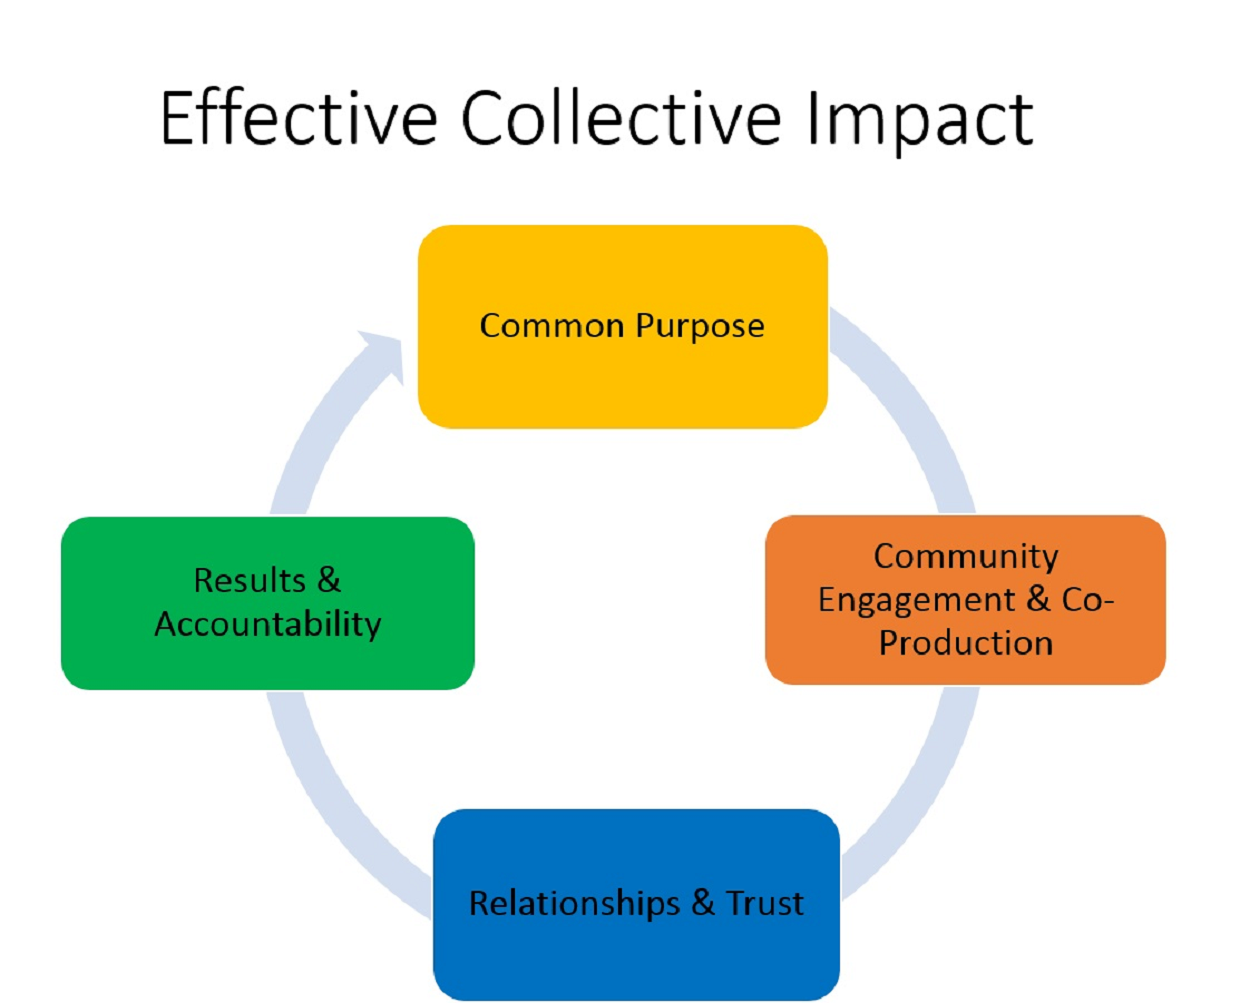 The Four Components of Effective Collective Impact